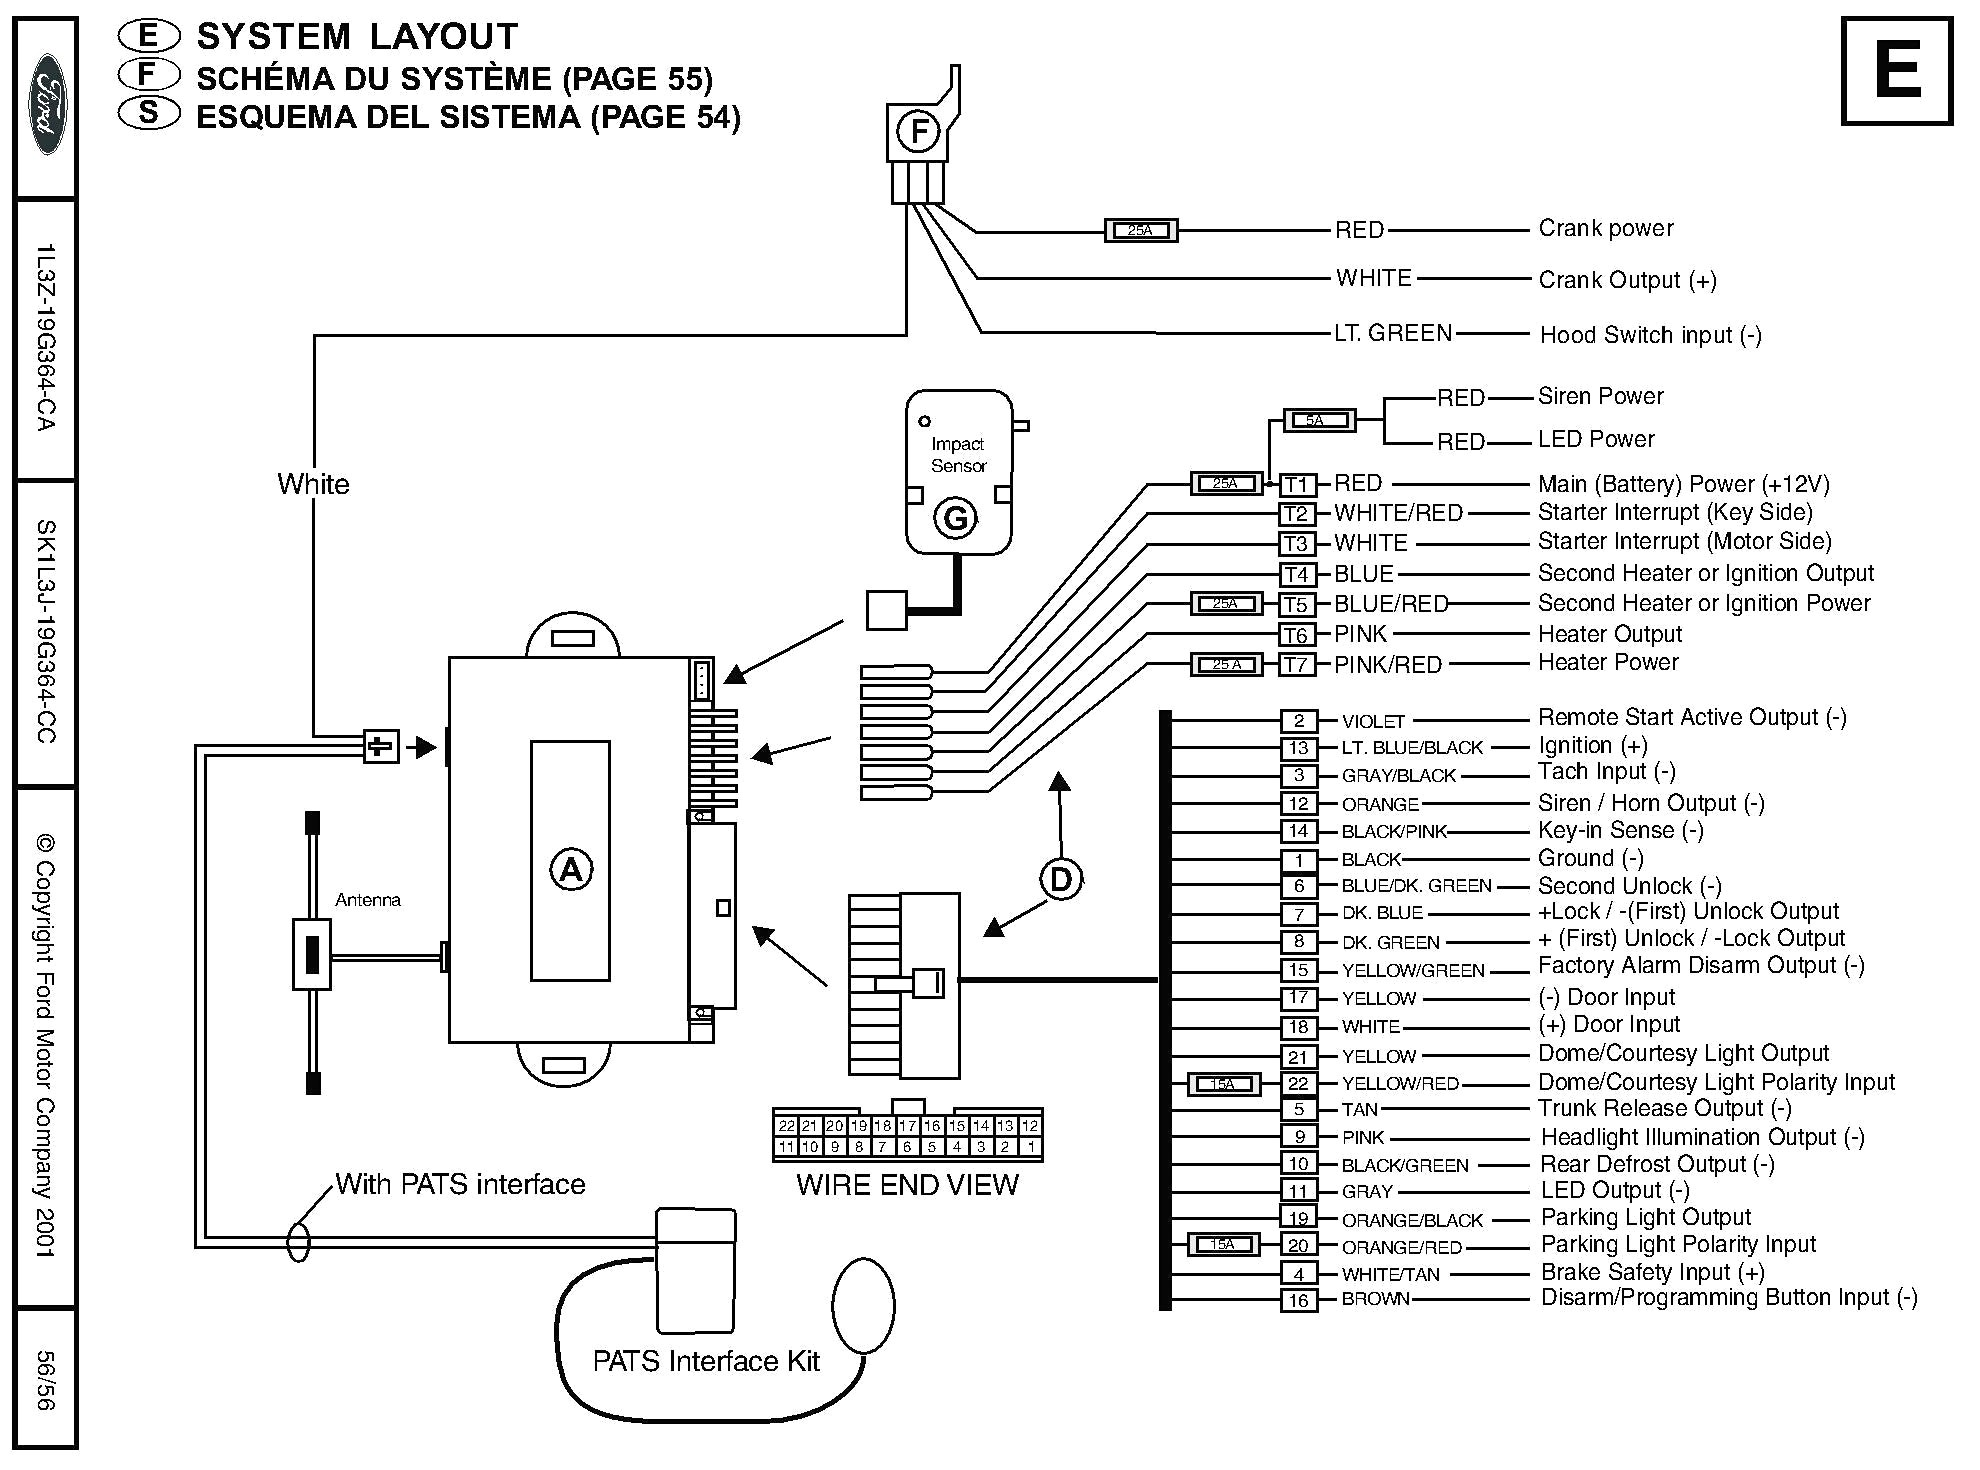 Car Ignition System Wiring Diagram My Wiring Diagram